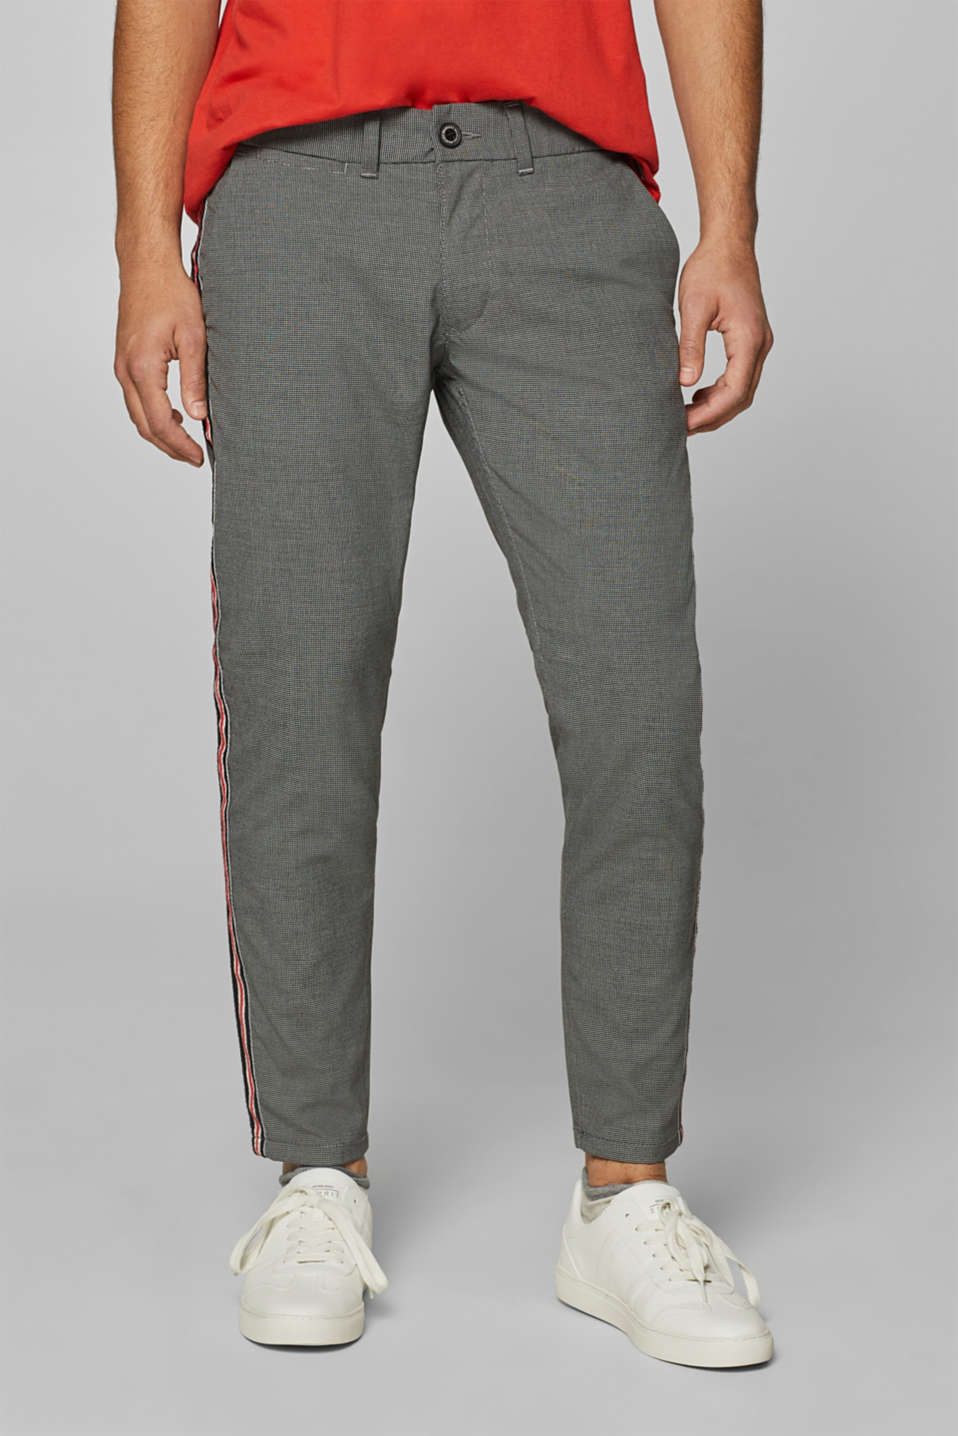 edc - Houndstooth trousers with racing stripes